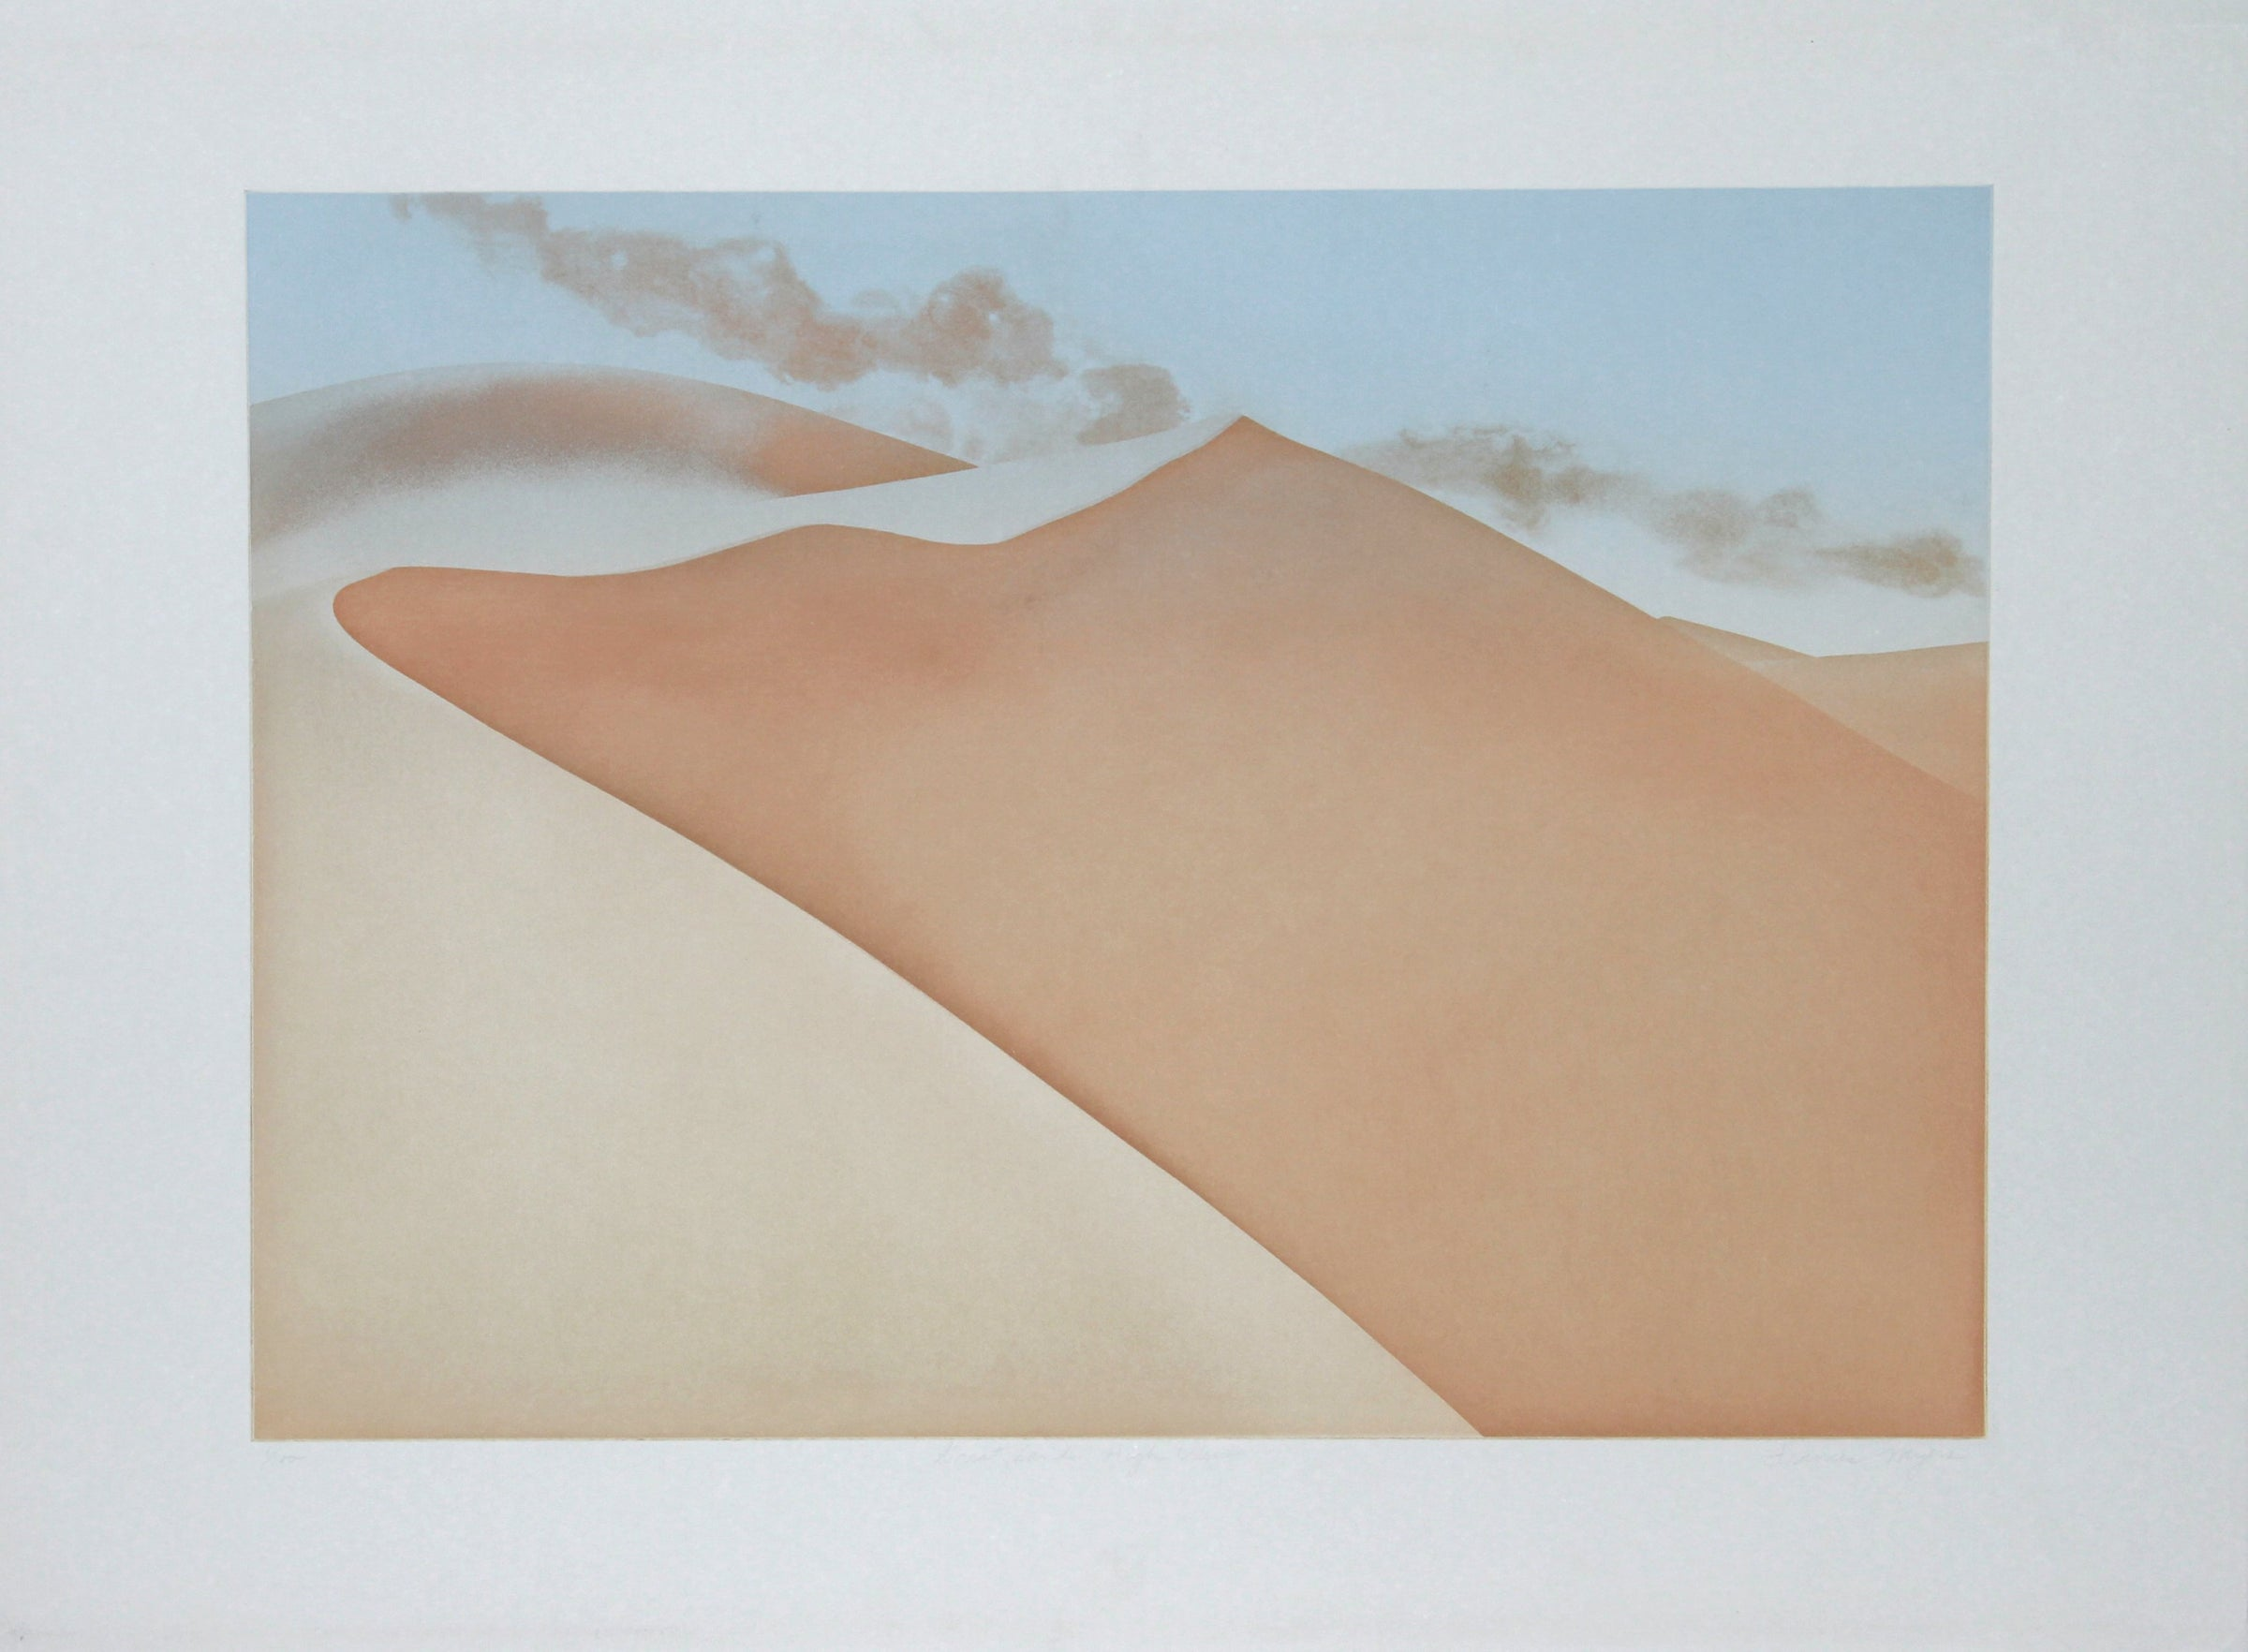 Frances Myers, Great Sands, High View Etching - RoGallery